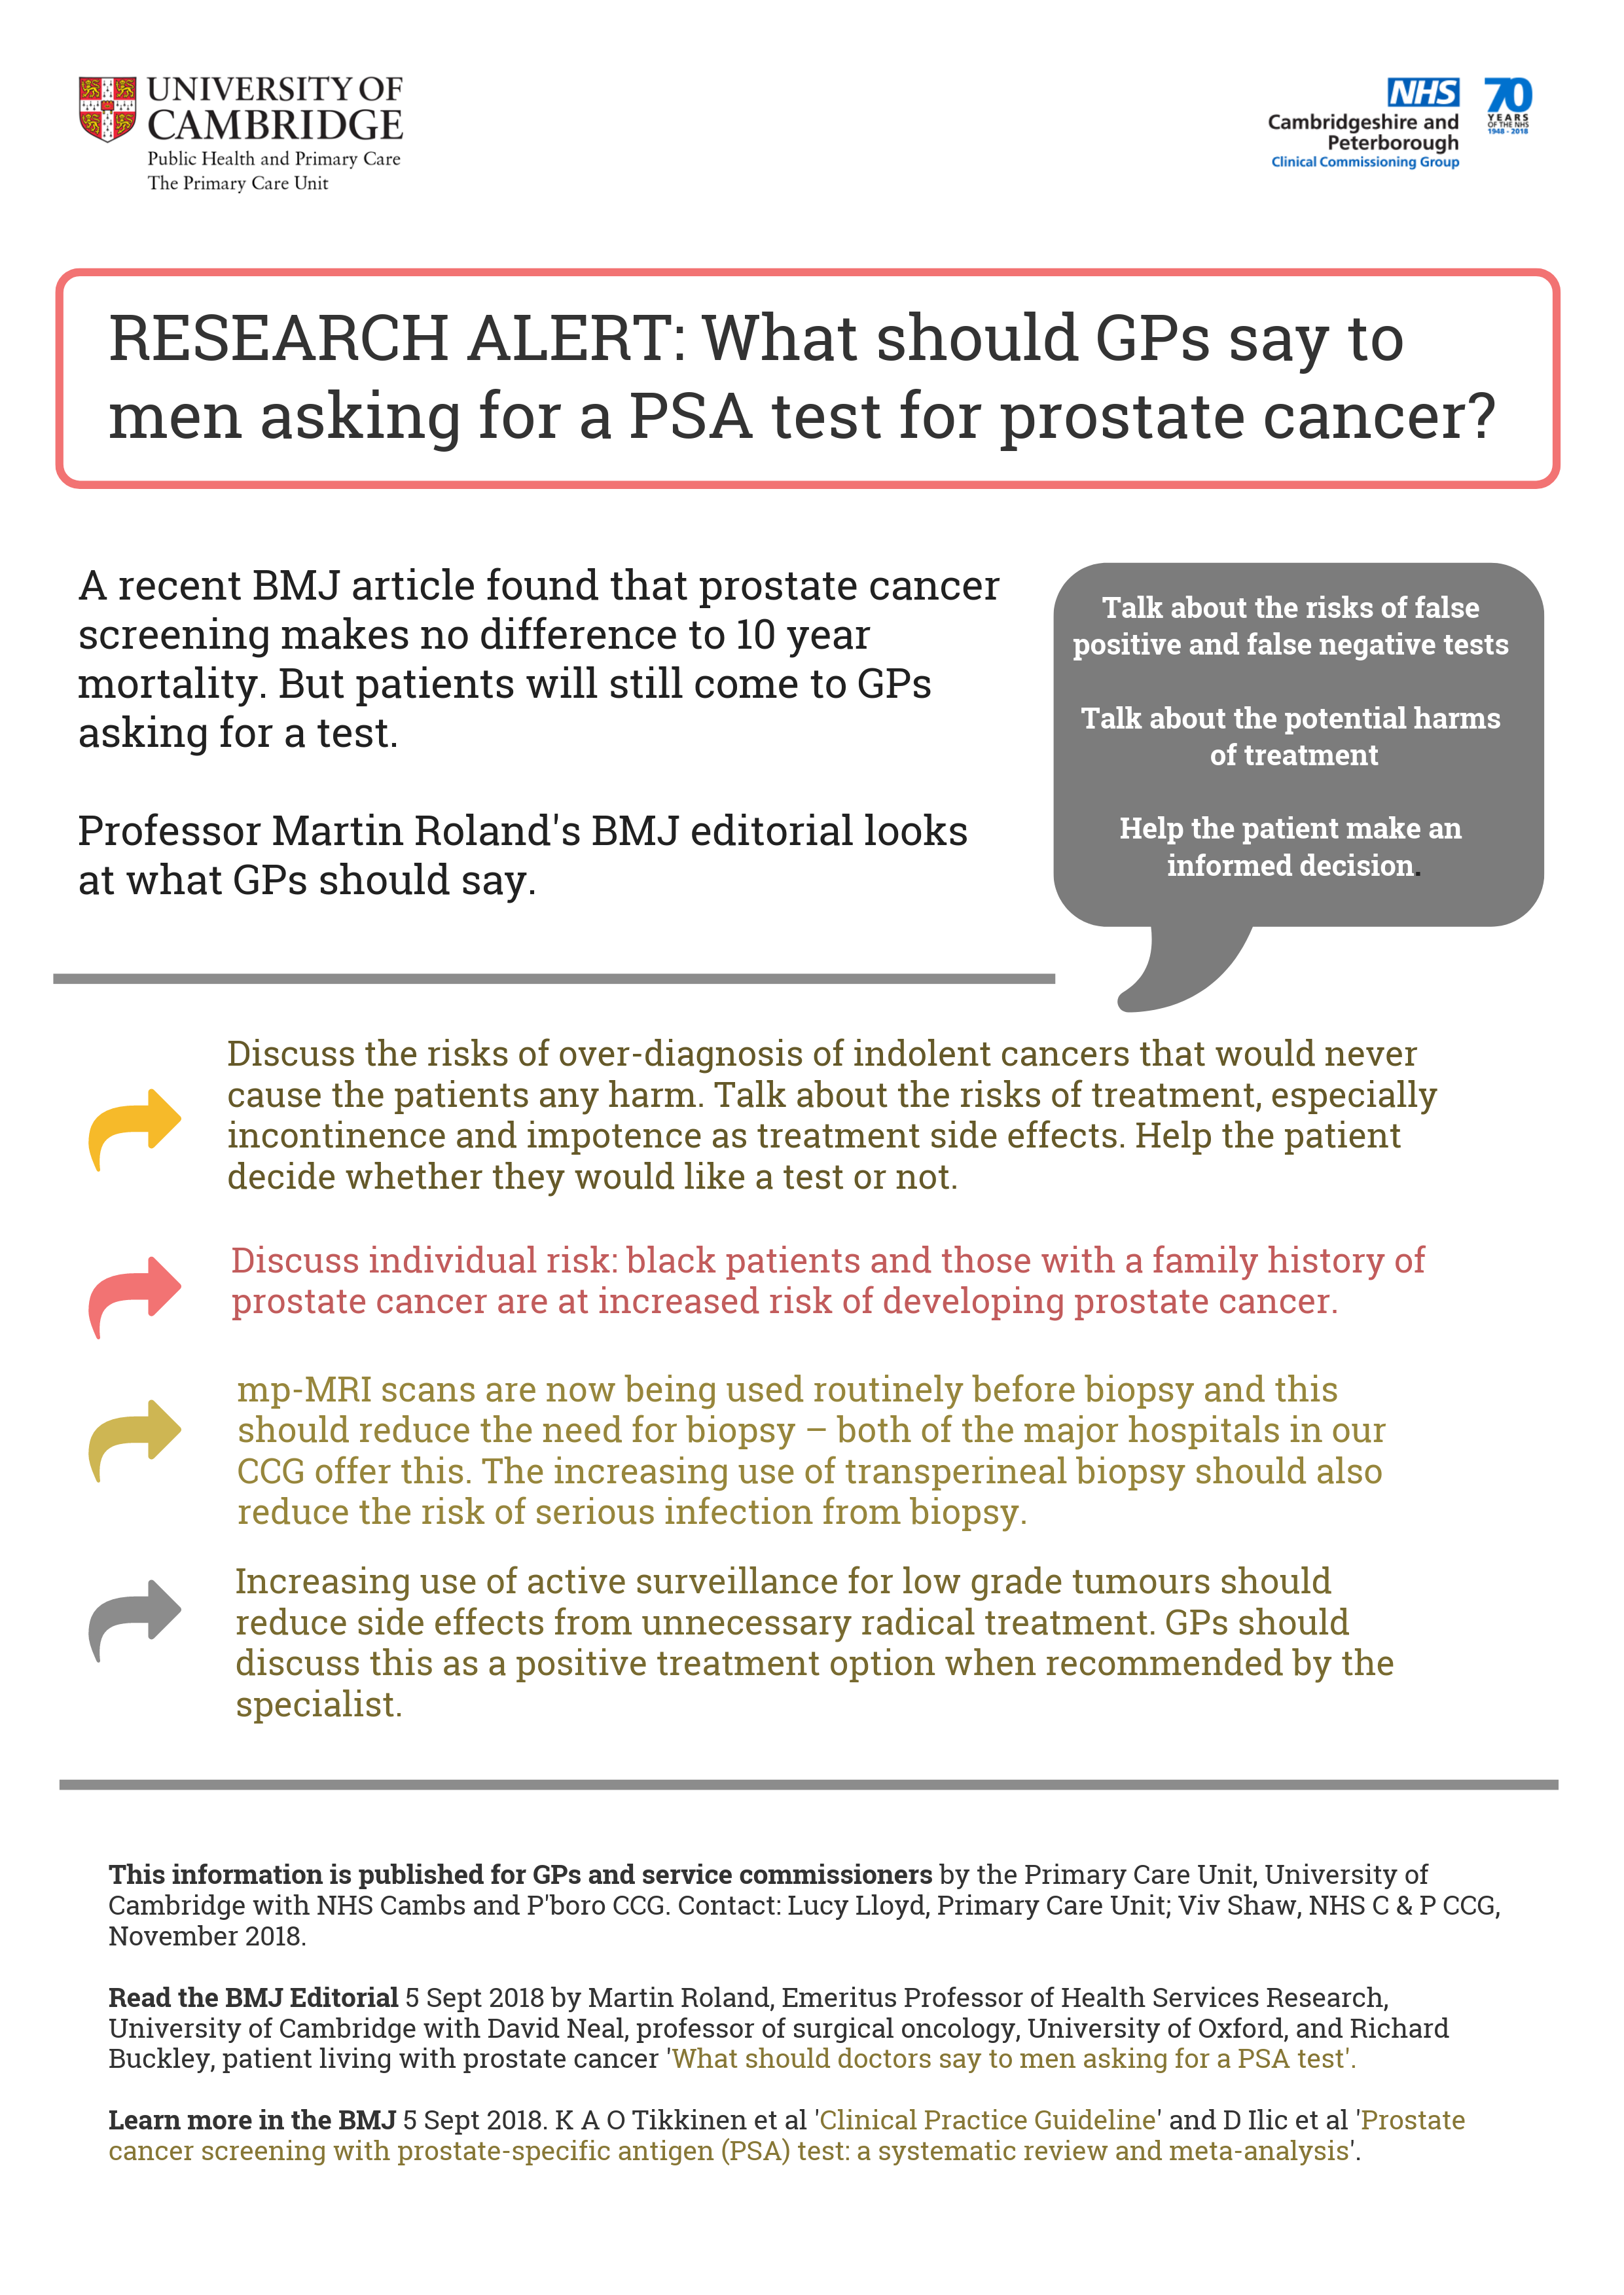 RESEARCH ALERT: What should GPs say to men asking for a PSA